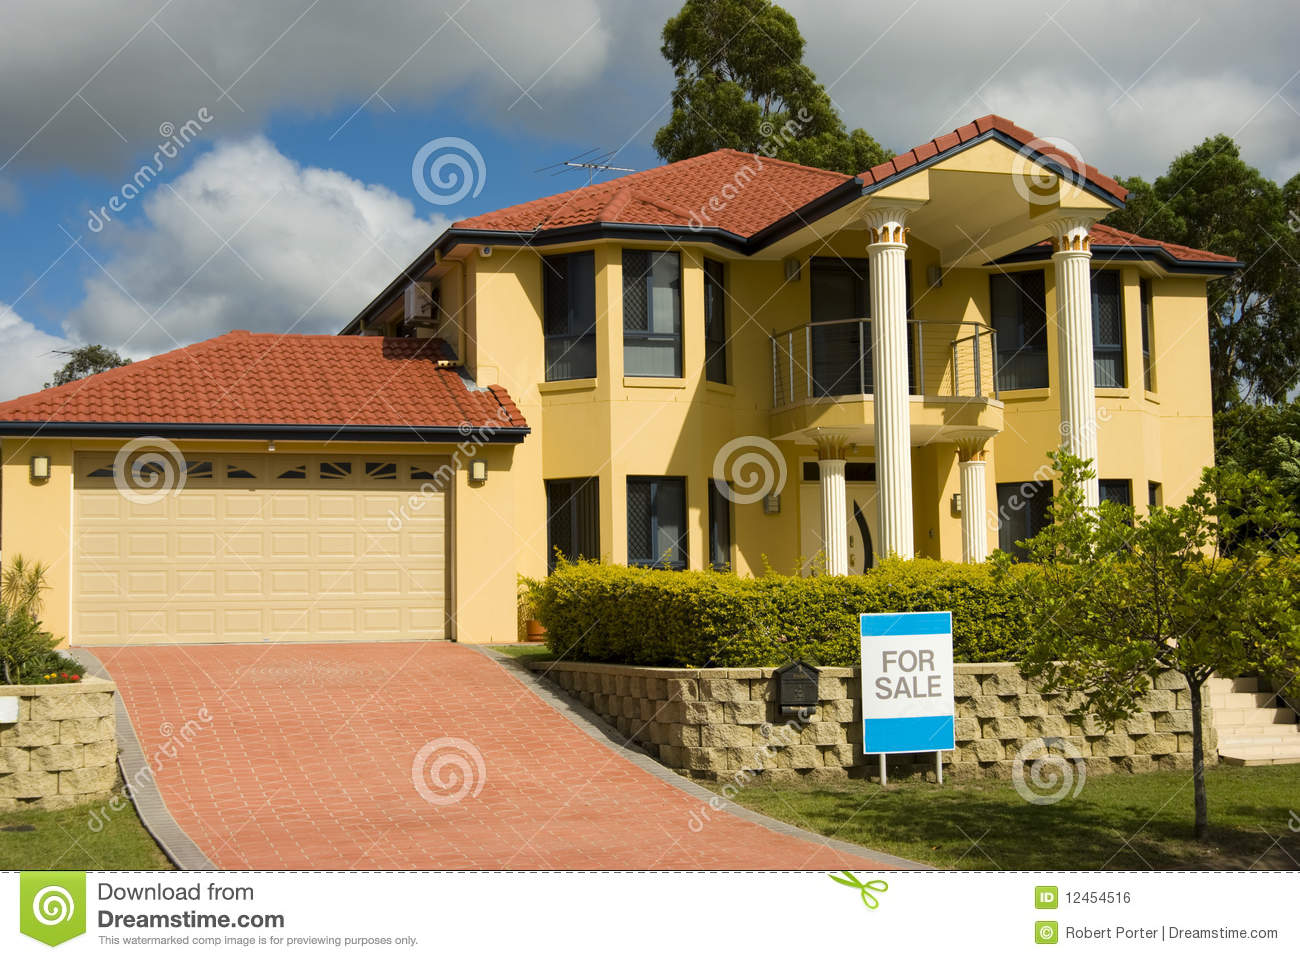 Modern house for sale royalty free stock image image 12454516 for Modern house auction